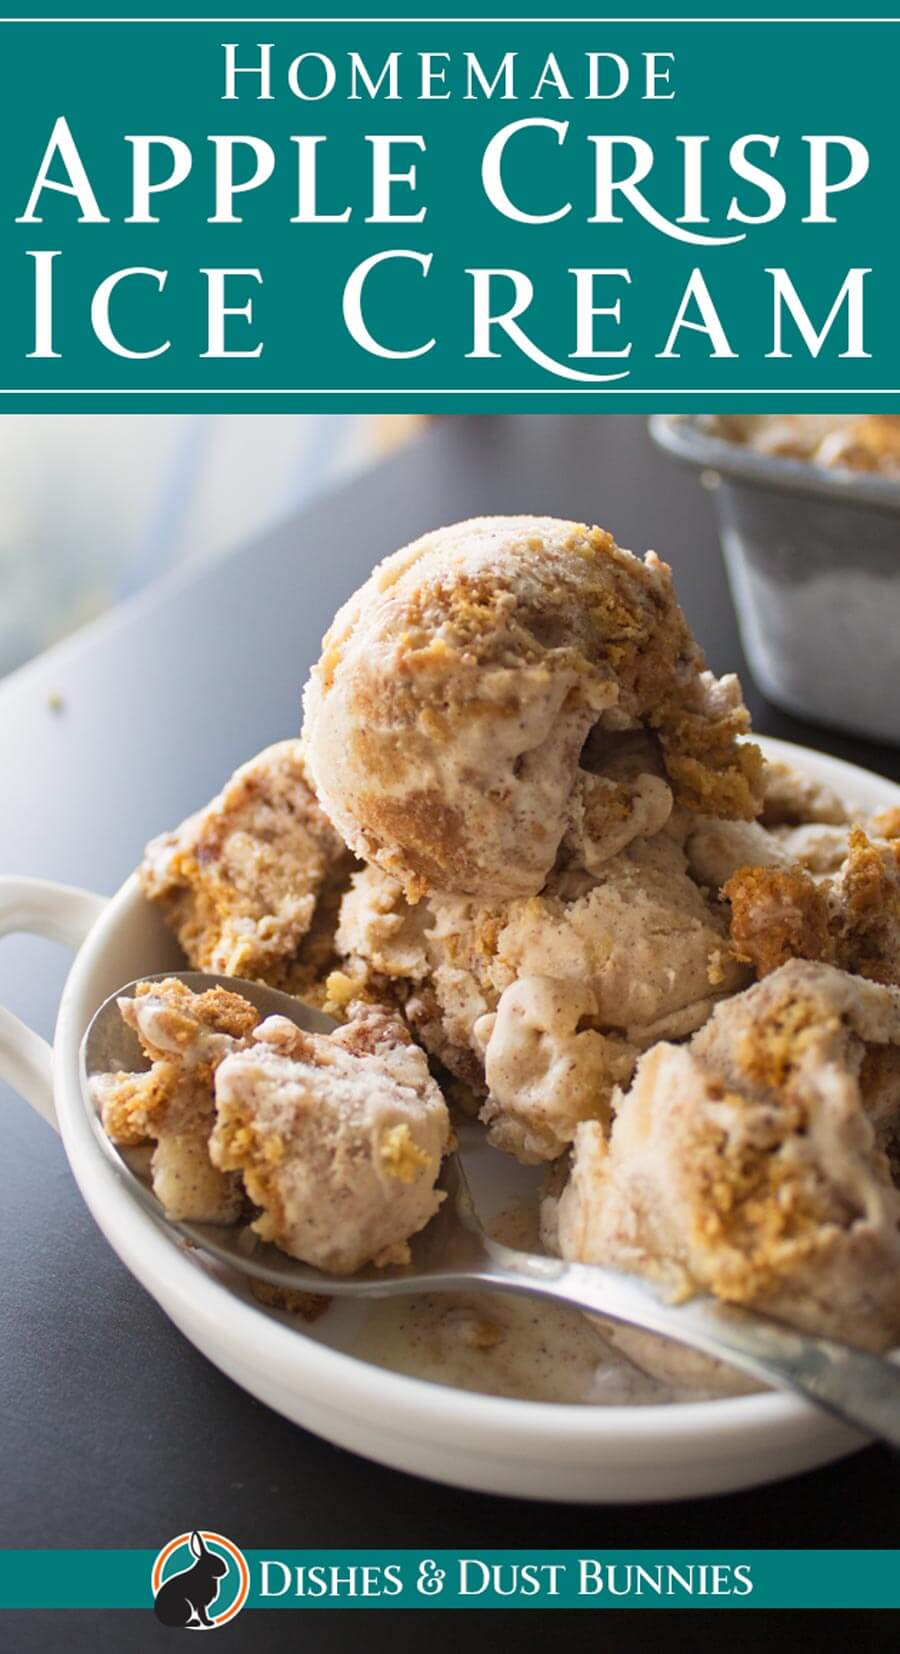 Homemade Apple Crisp Ice Cream via @mvdustbunnies